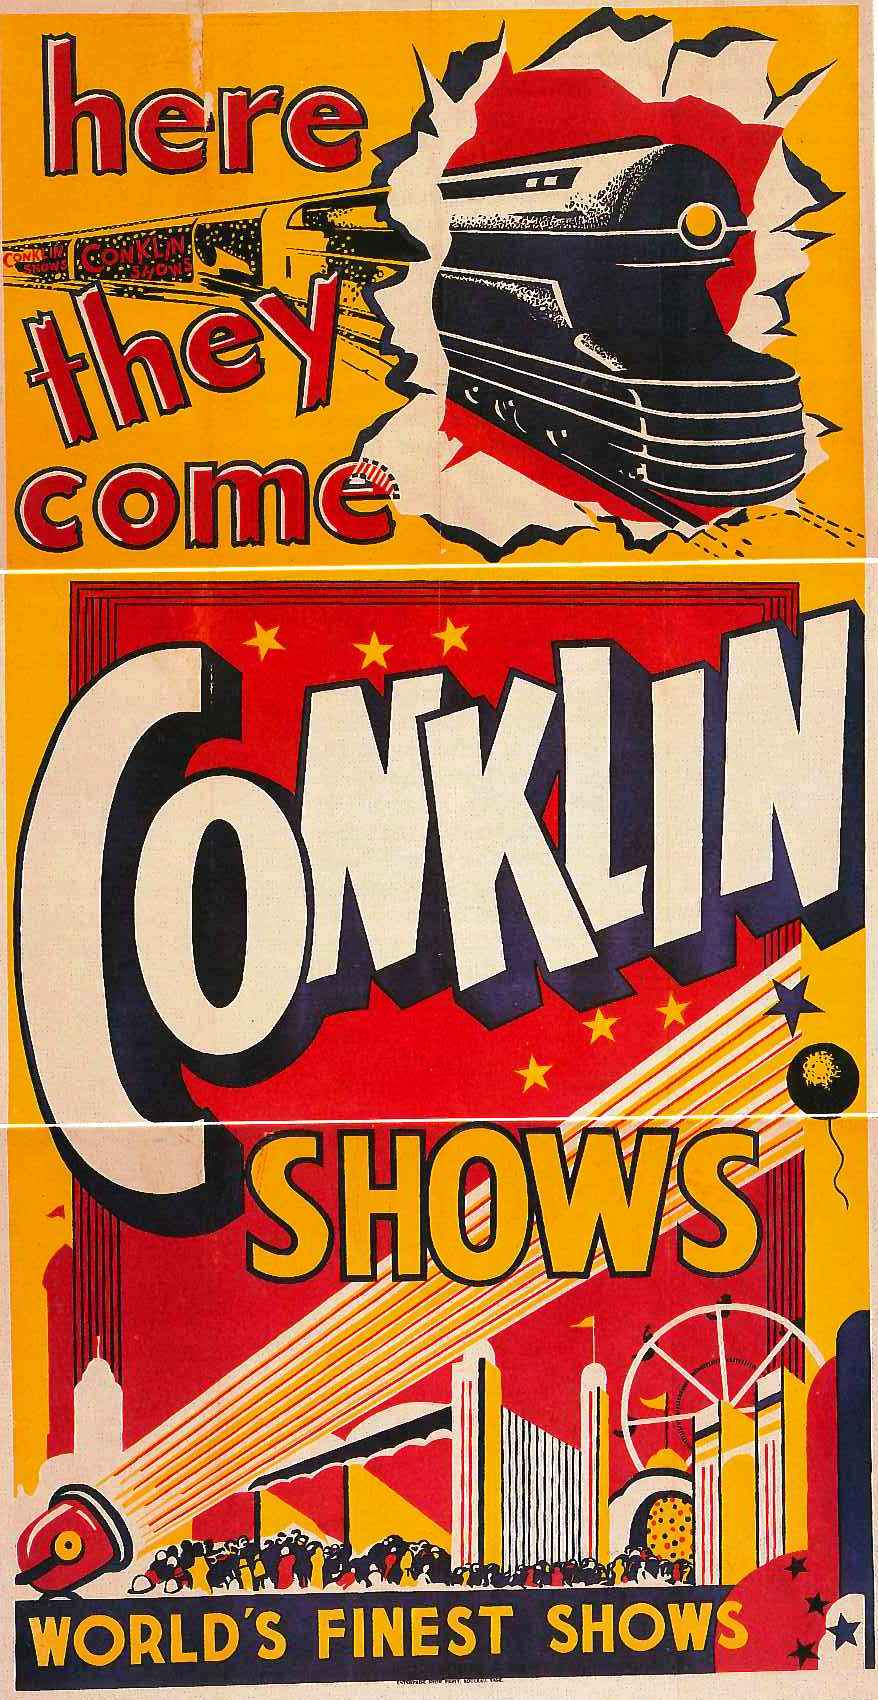 Conklin Shows Poster, circa 1940